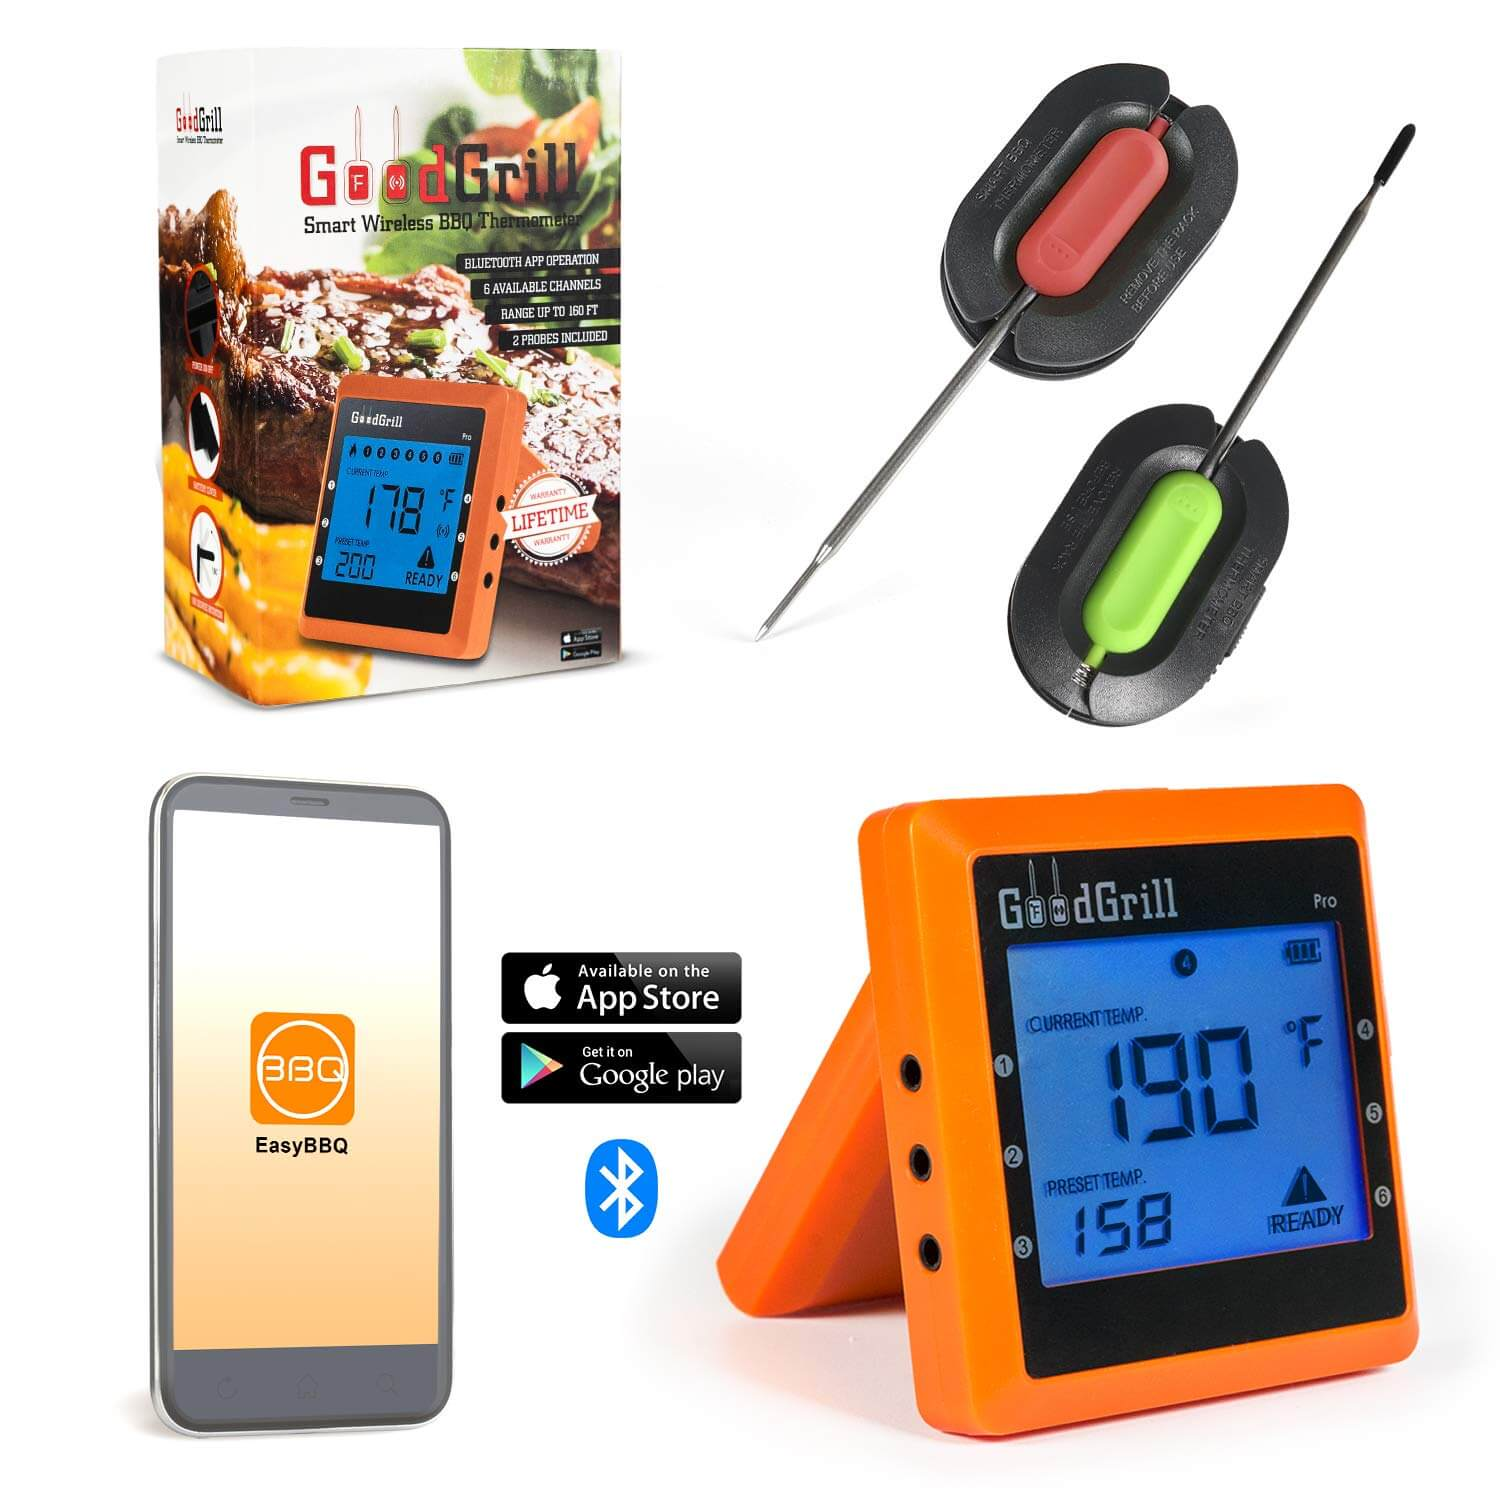 GoodGrill Wireless Meat Thermometer